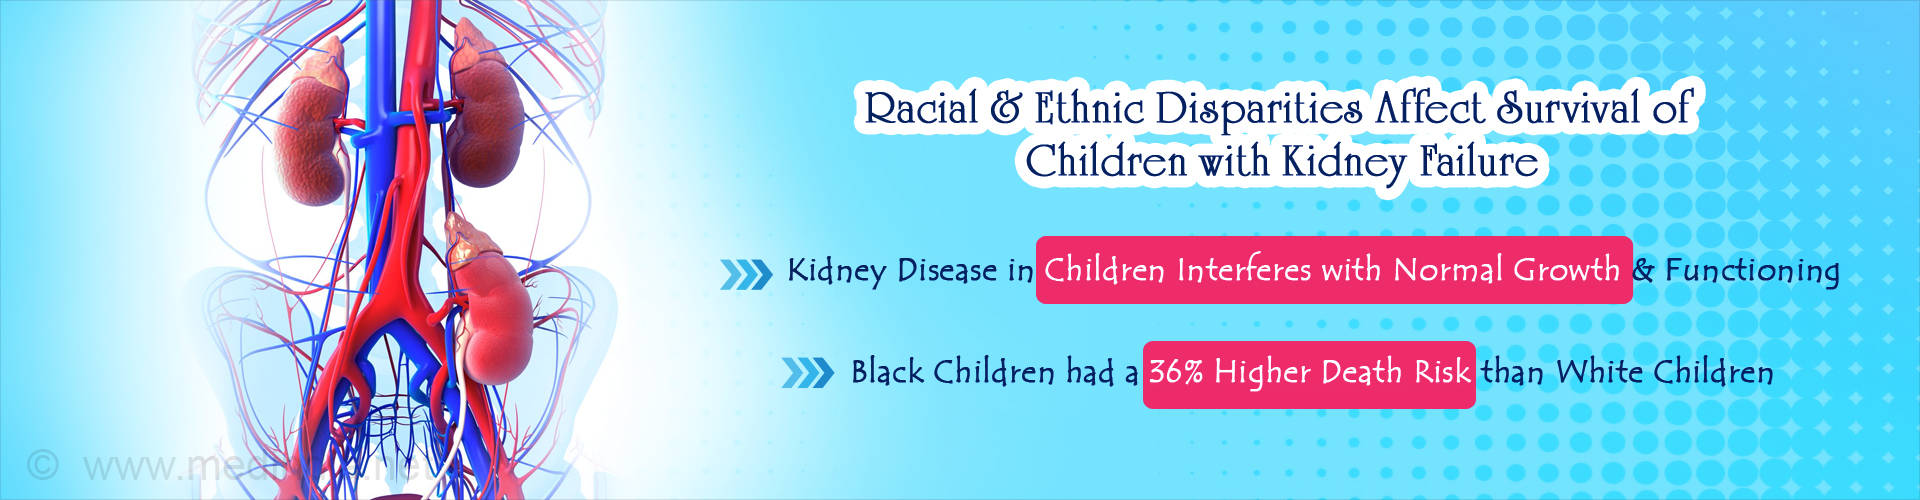 Children's Access to Kidney Transplantation Affected by Racial Disparities